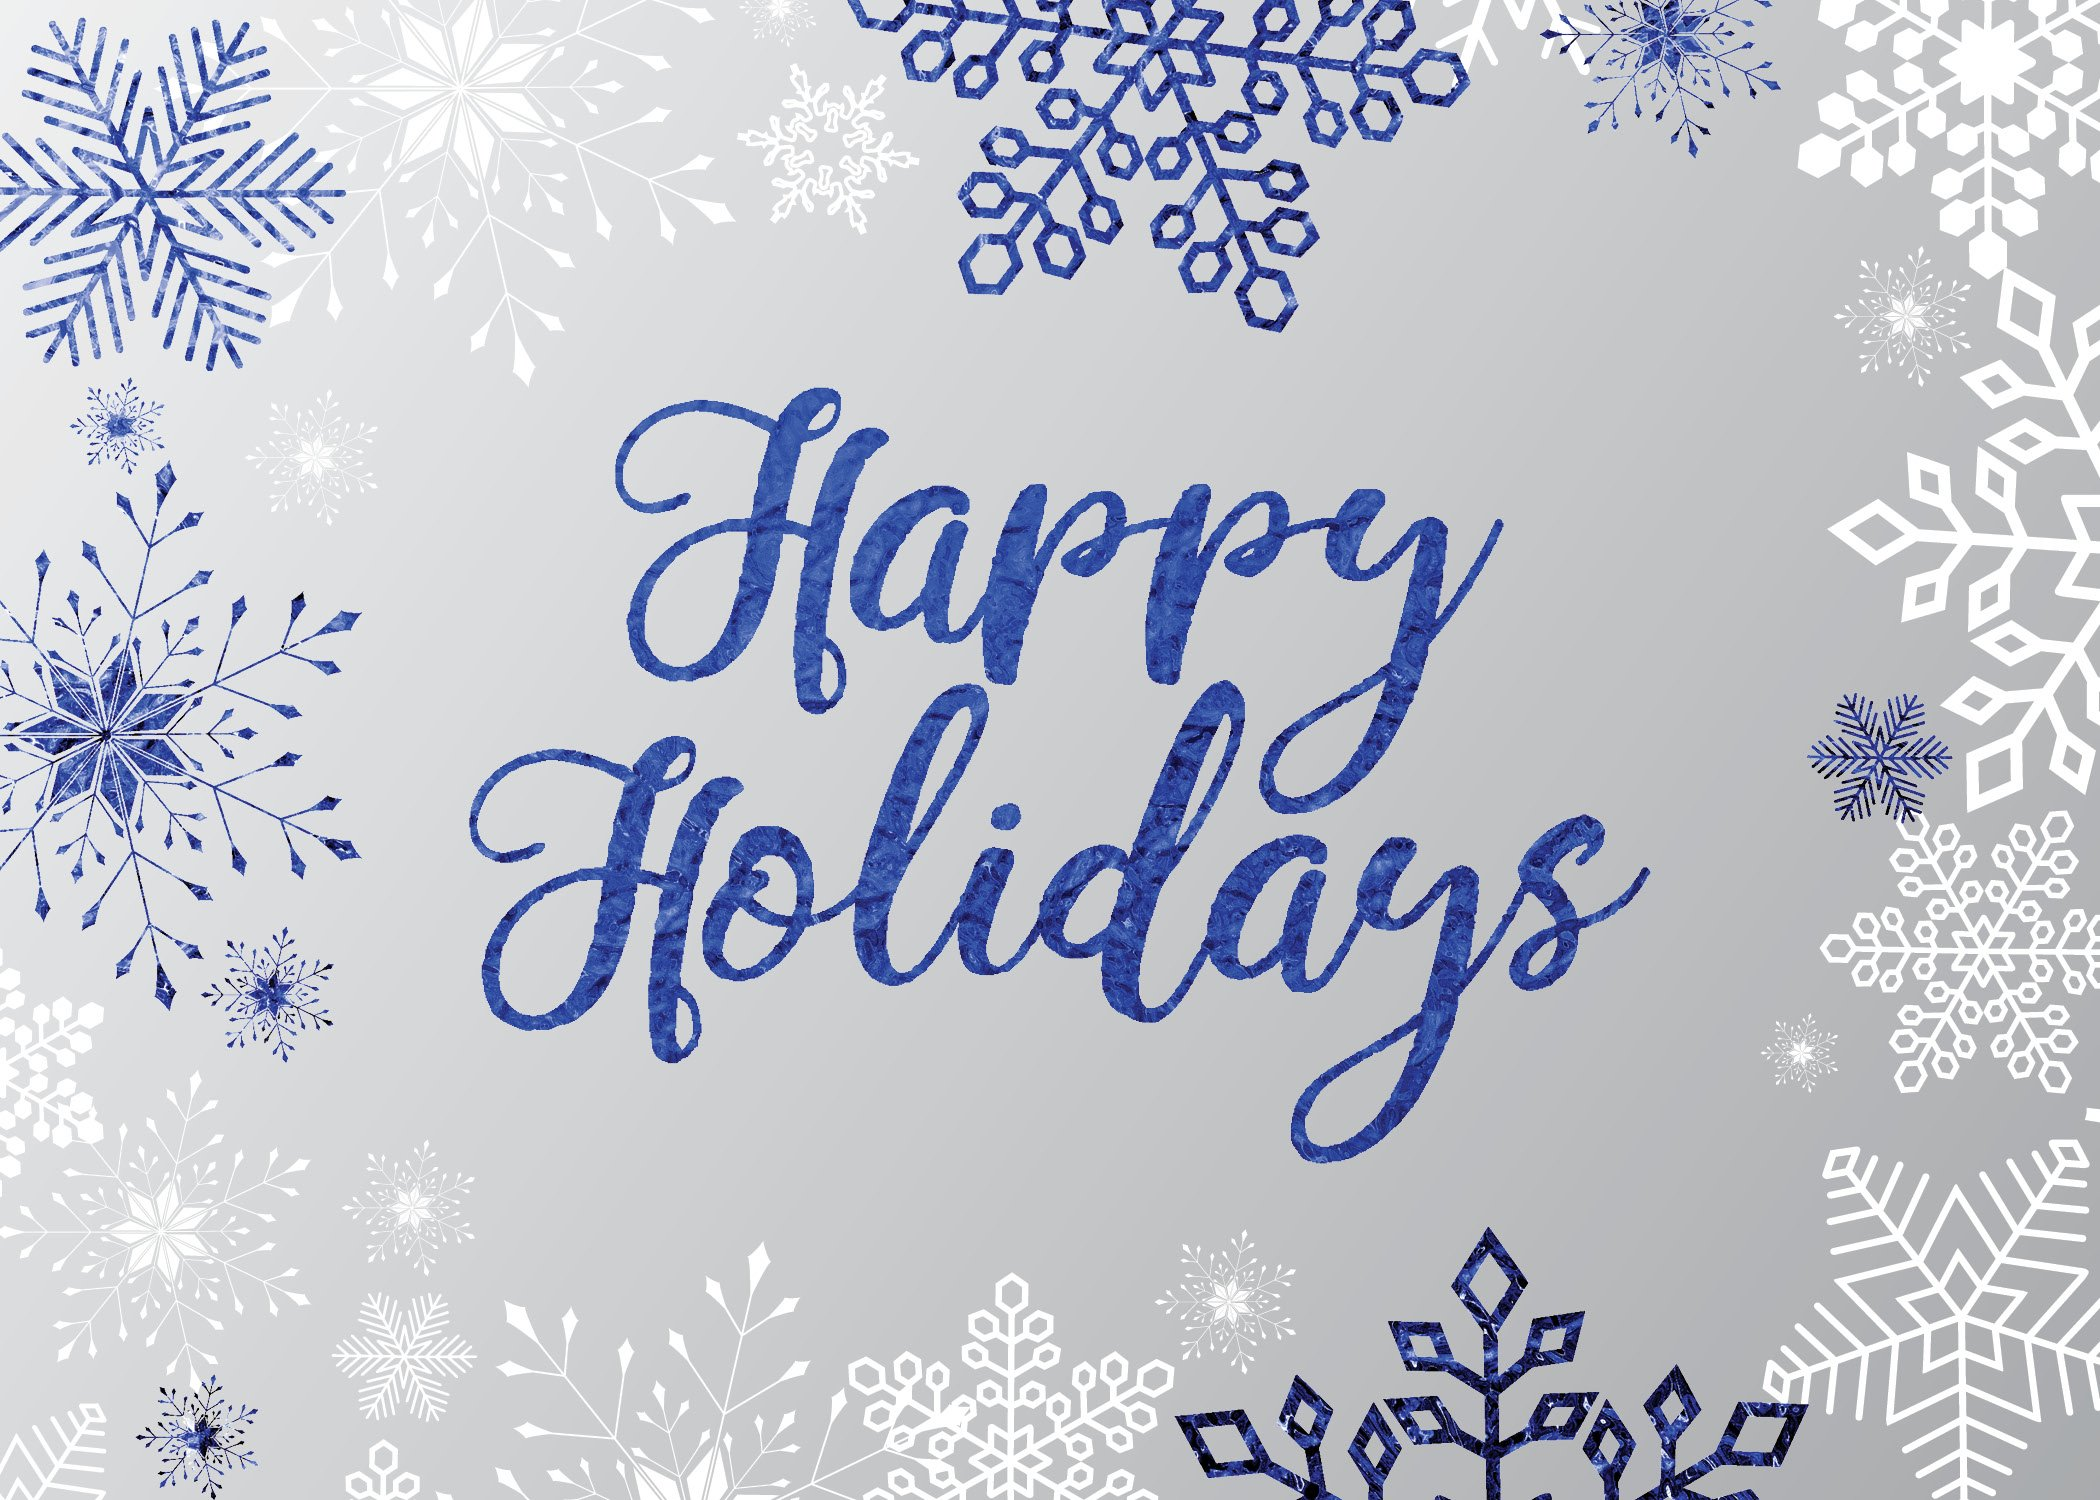 Holiday Foil Printed Greeting Cards - H1709. Greeting Card Accented by Blue Snowflakes and Happy Holidays in Blue Foil. Box Set Has 25 Greeting Cards and 26 Silver Foil Lined Envelopes.